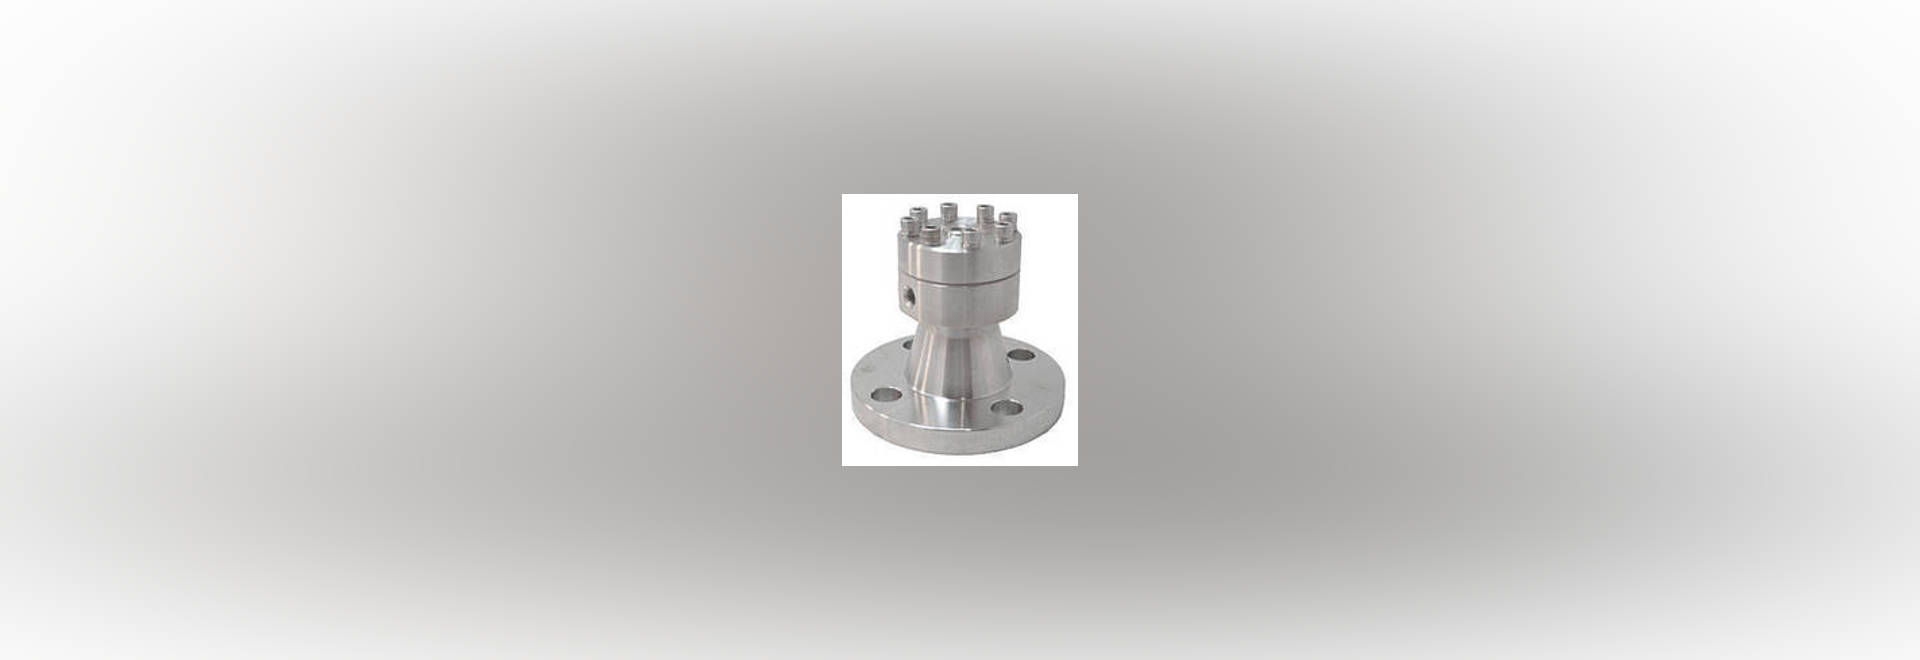 Available in pressure ranges up to 5,000 psi (standard trim) and 10,000 psi (high-pressure trim), BR series does not require heating to maintain pressure control. All-mechanical design eliminates a...